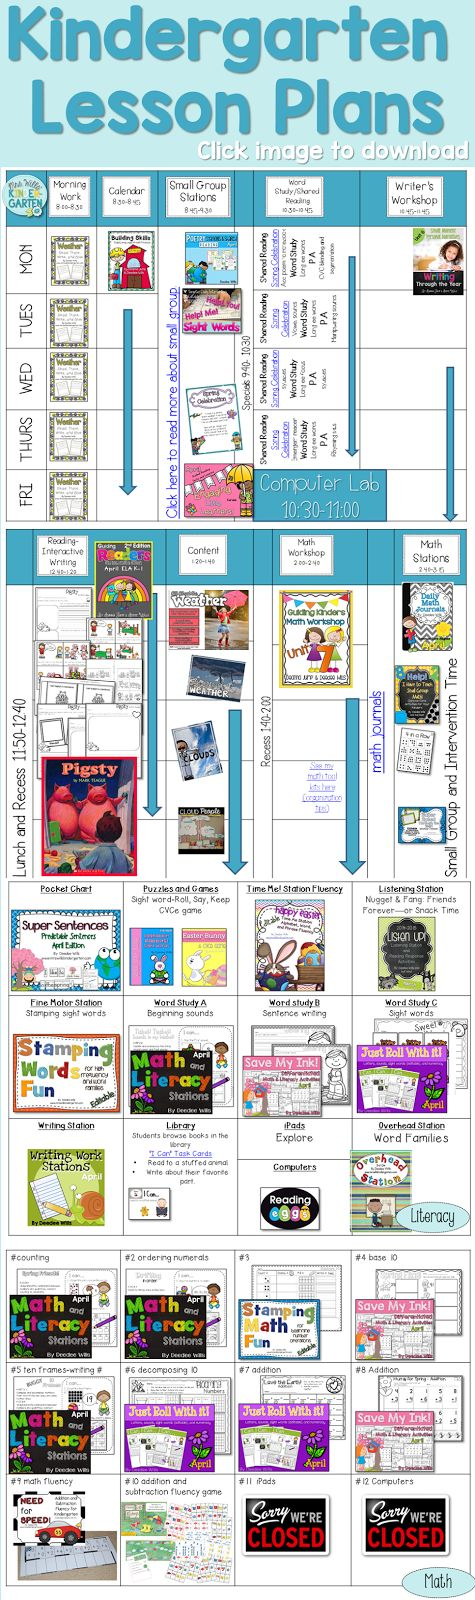 Kindergarten Lesson Plans!  Yippee for Spring!